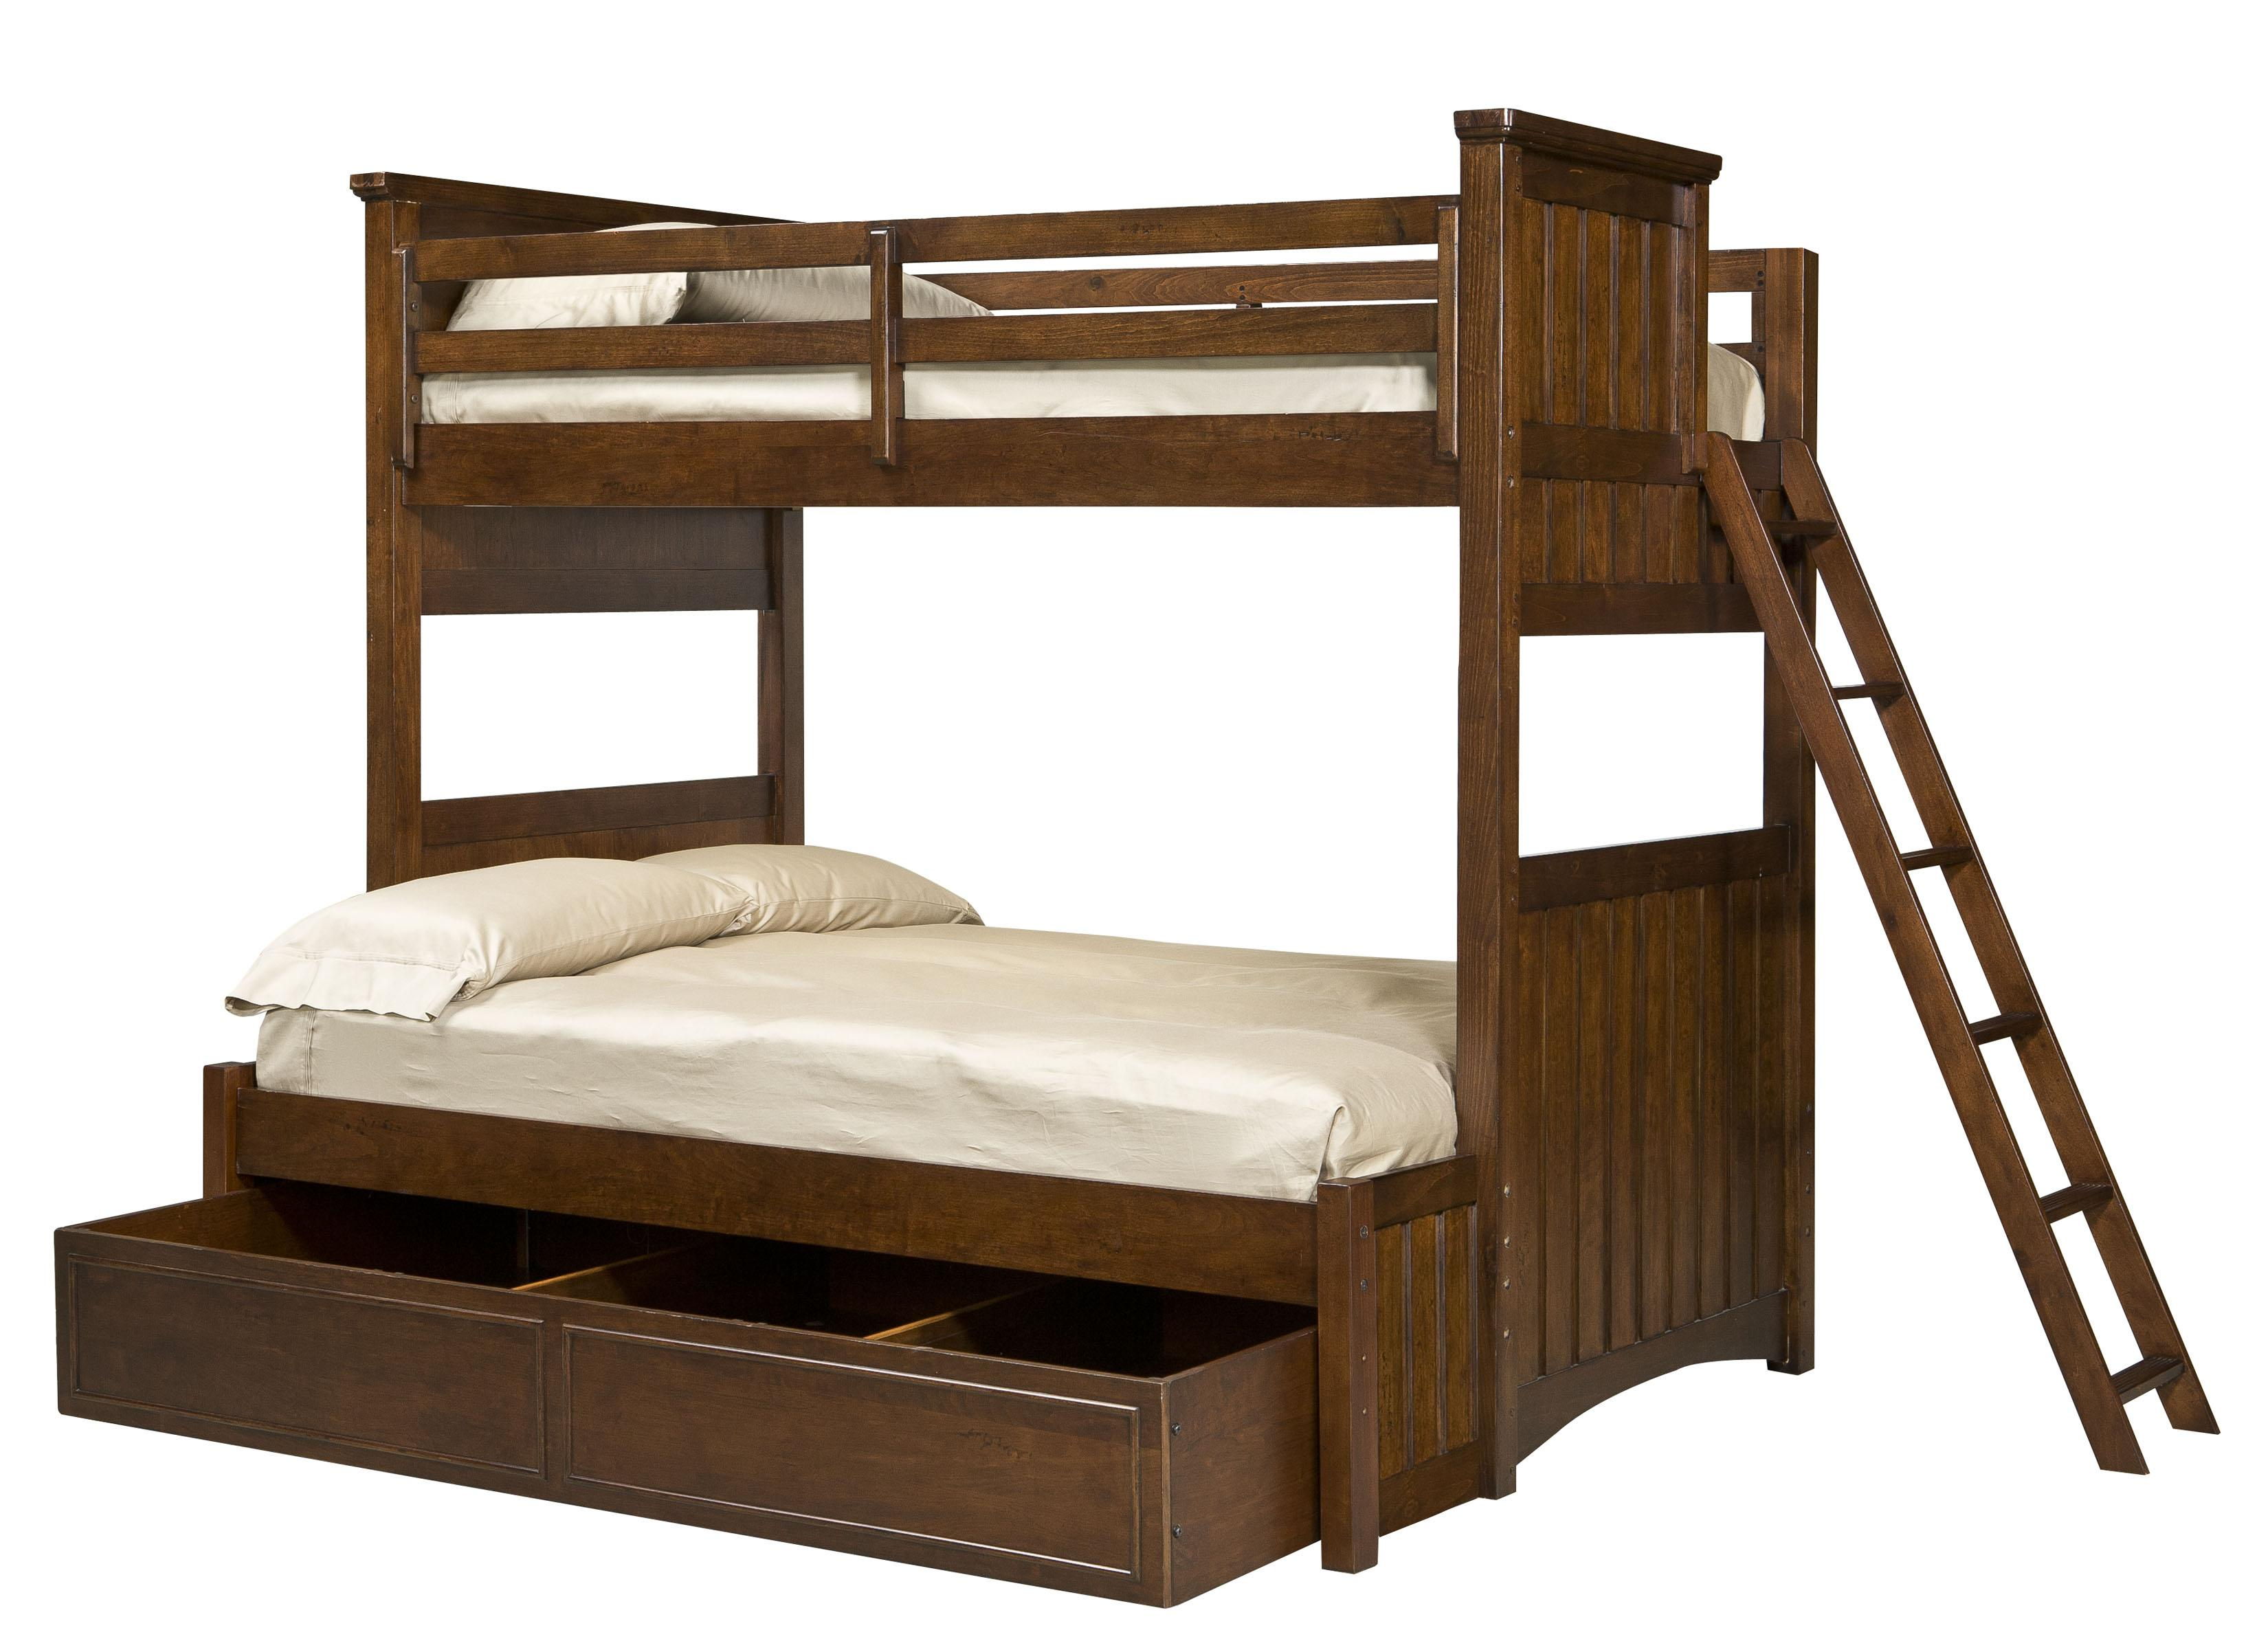 Legacy Classic Kids Dawsons Ridge Twin-over-Full Bunk w/ Trundle - Item Number: Twin-Over-FullBunk+9500